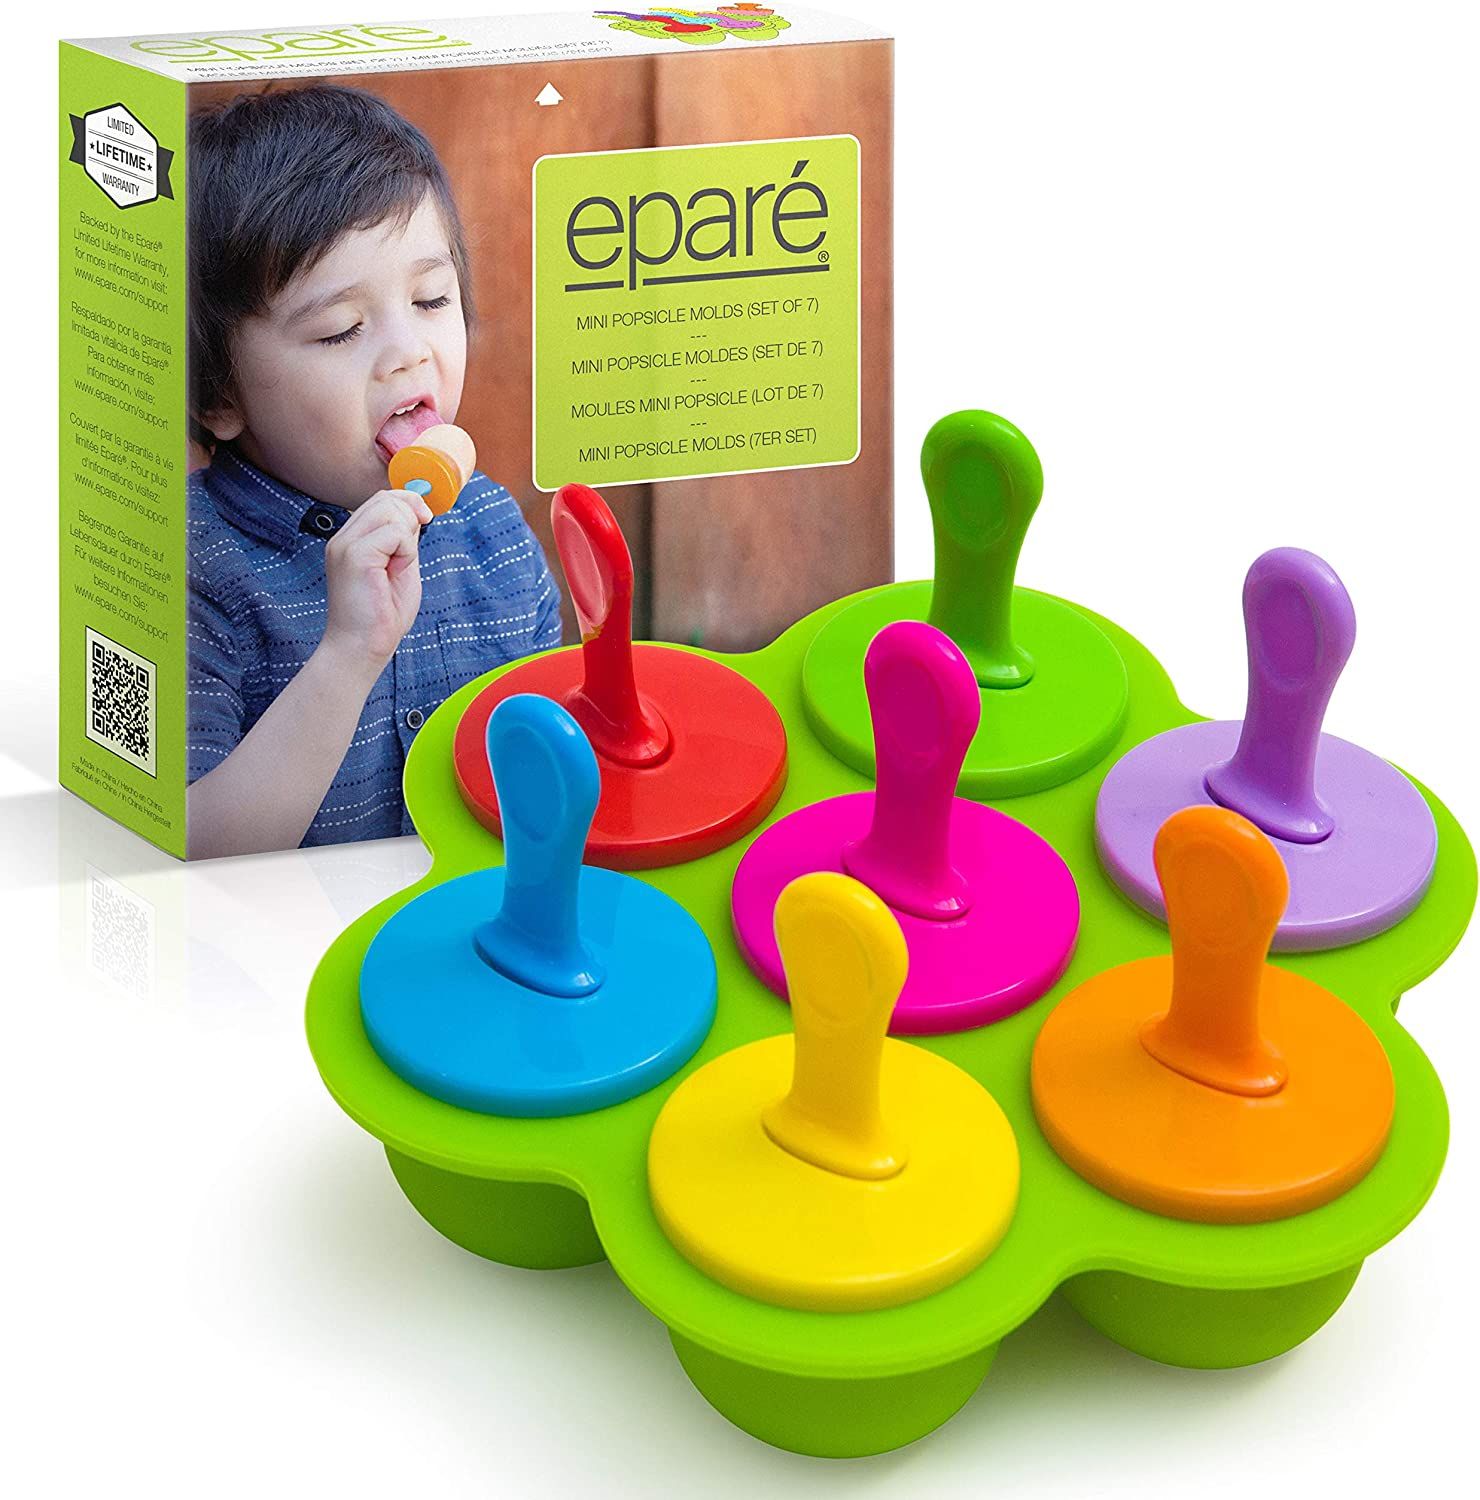 Eparé Toddler Popsicle Molds - Ice Cream Treat Tray - For Baby Teething Ice Pop Maker - Mini BPA Free Food Silicone Mold